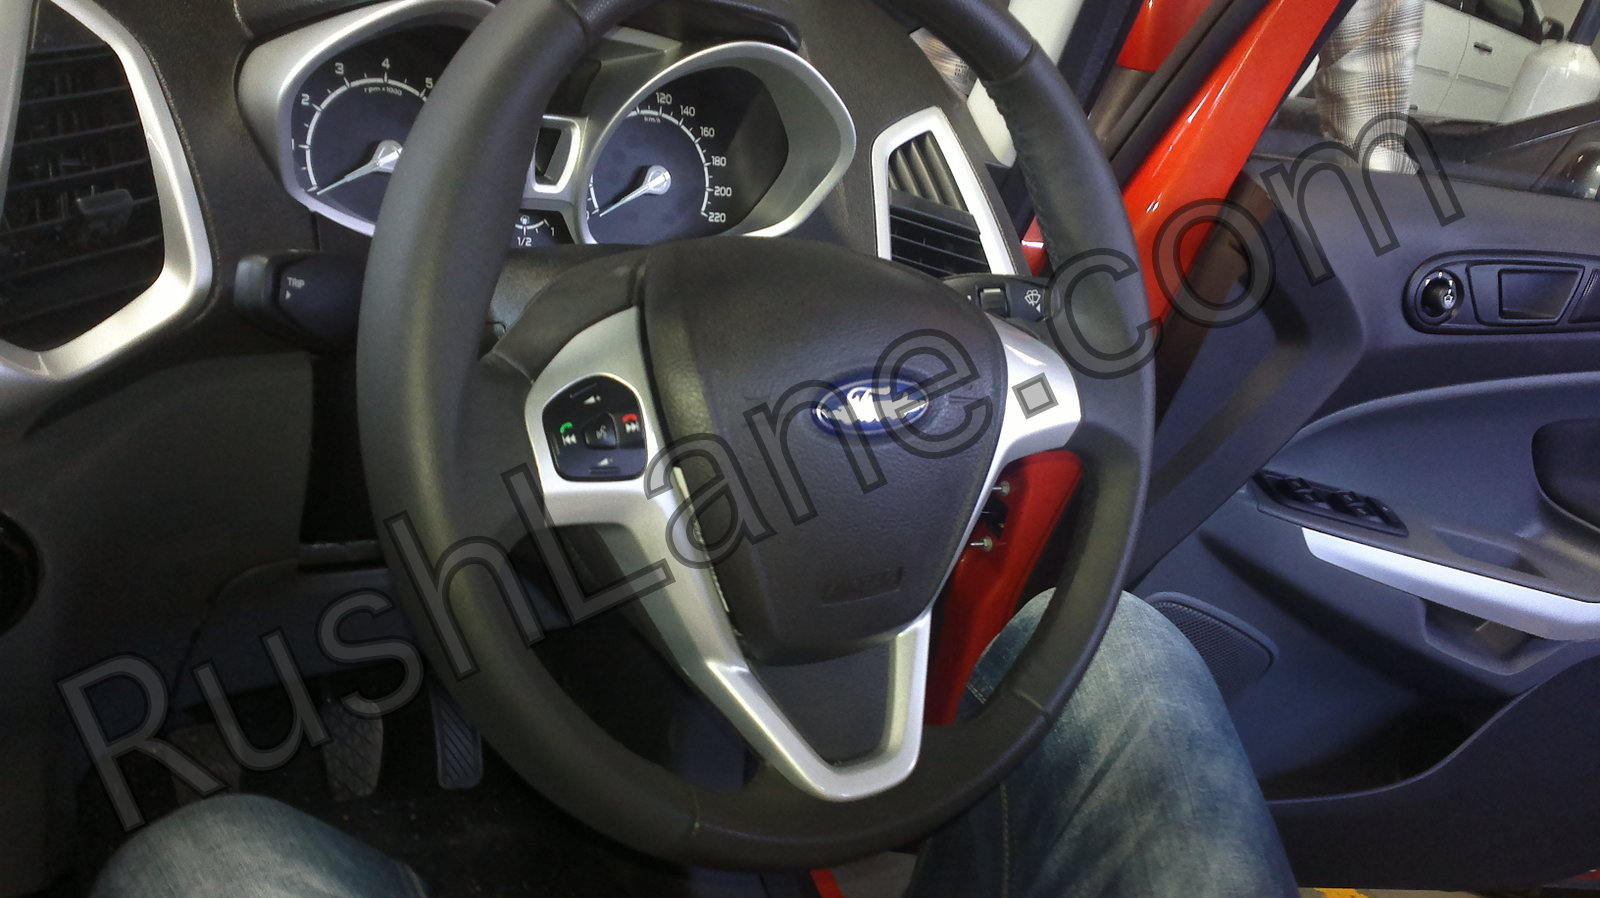 Ford-Ecosport-Ecoboost-Interiors-Steering